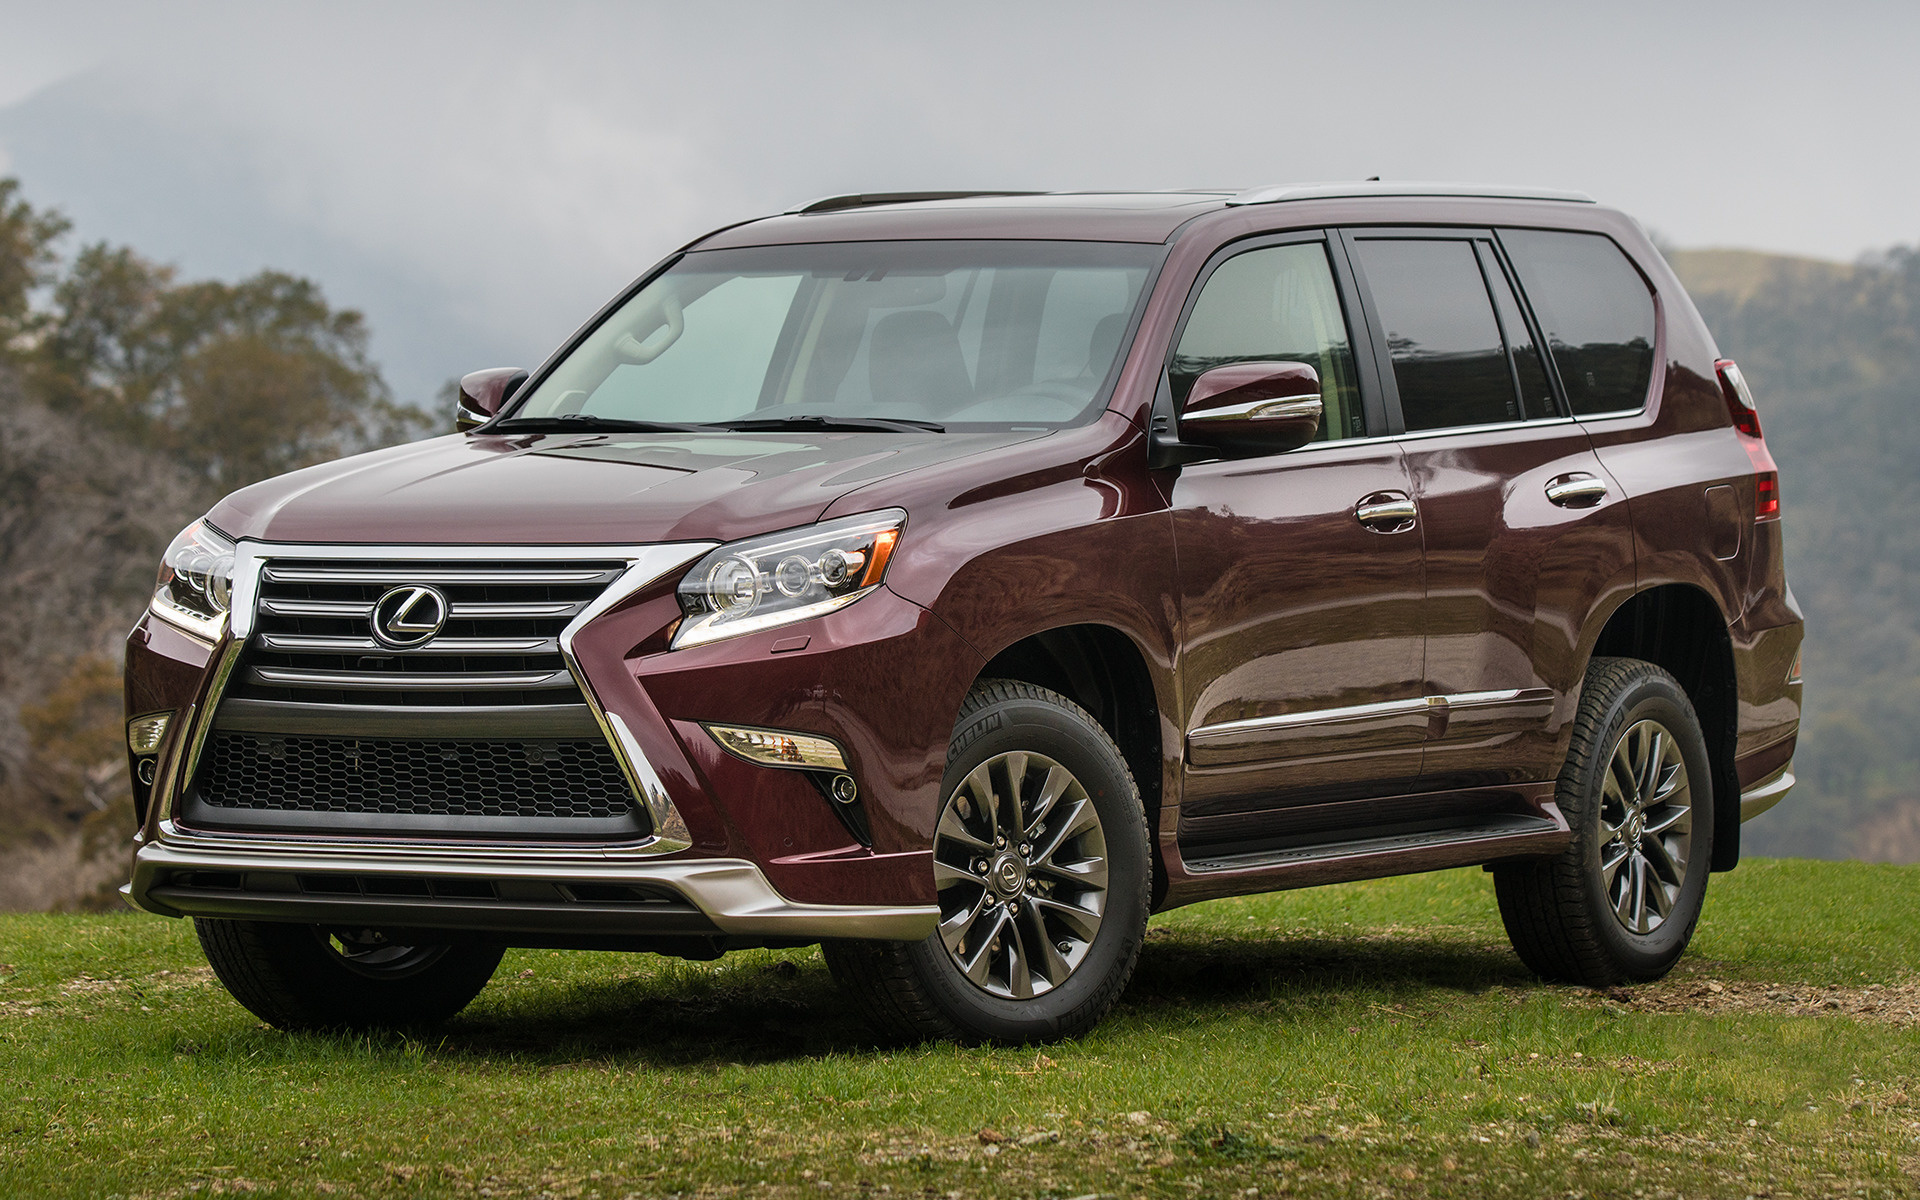 lexus gx sport design package 2017 wallpapers and hd images car pixel. Black Bedroom Furniture Sets. Home Design Ideas